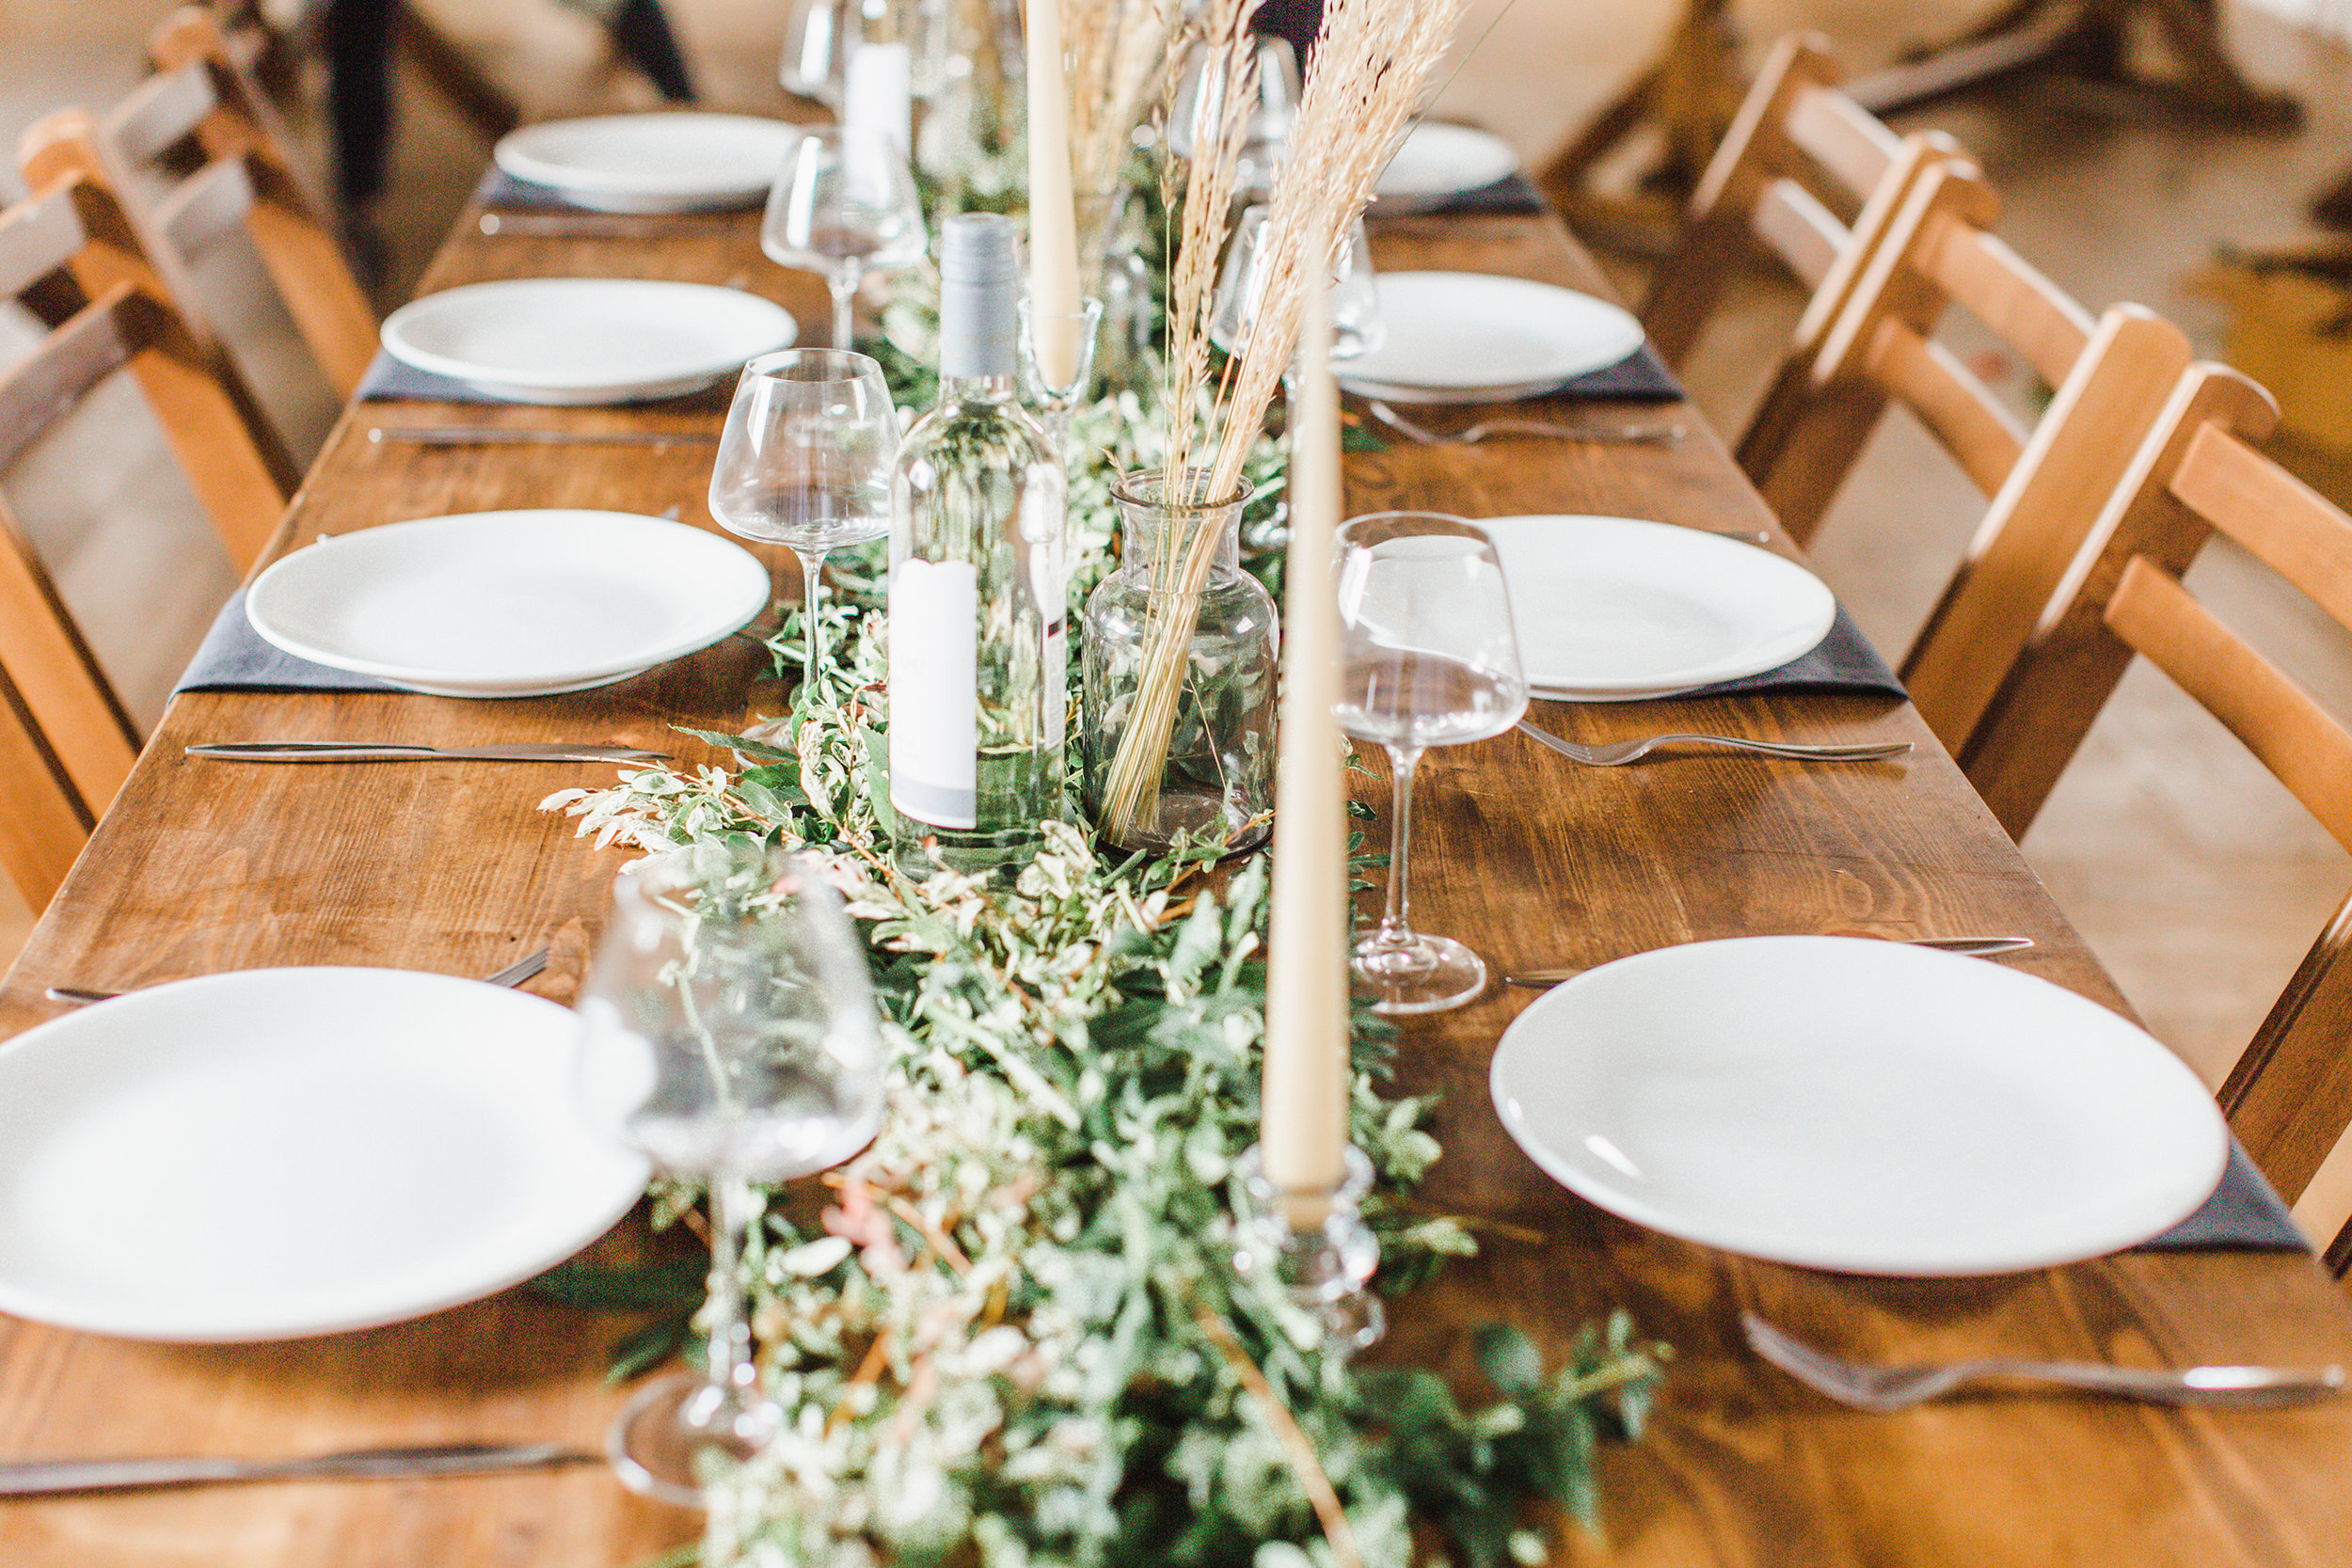 Get Inspired - Come along to see multiple table designs including a buffet-themed and showcasing our decor from The White Company. See our food cart hosting a grazing station provided by Hall and Co Event Design, lounge areas, booth station, floral displays and more.